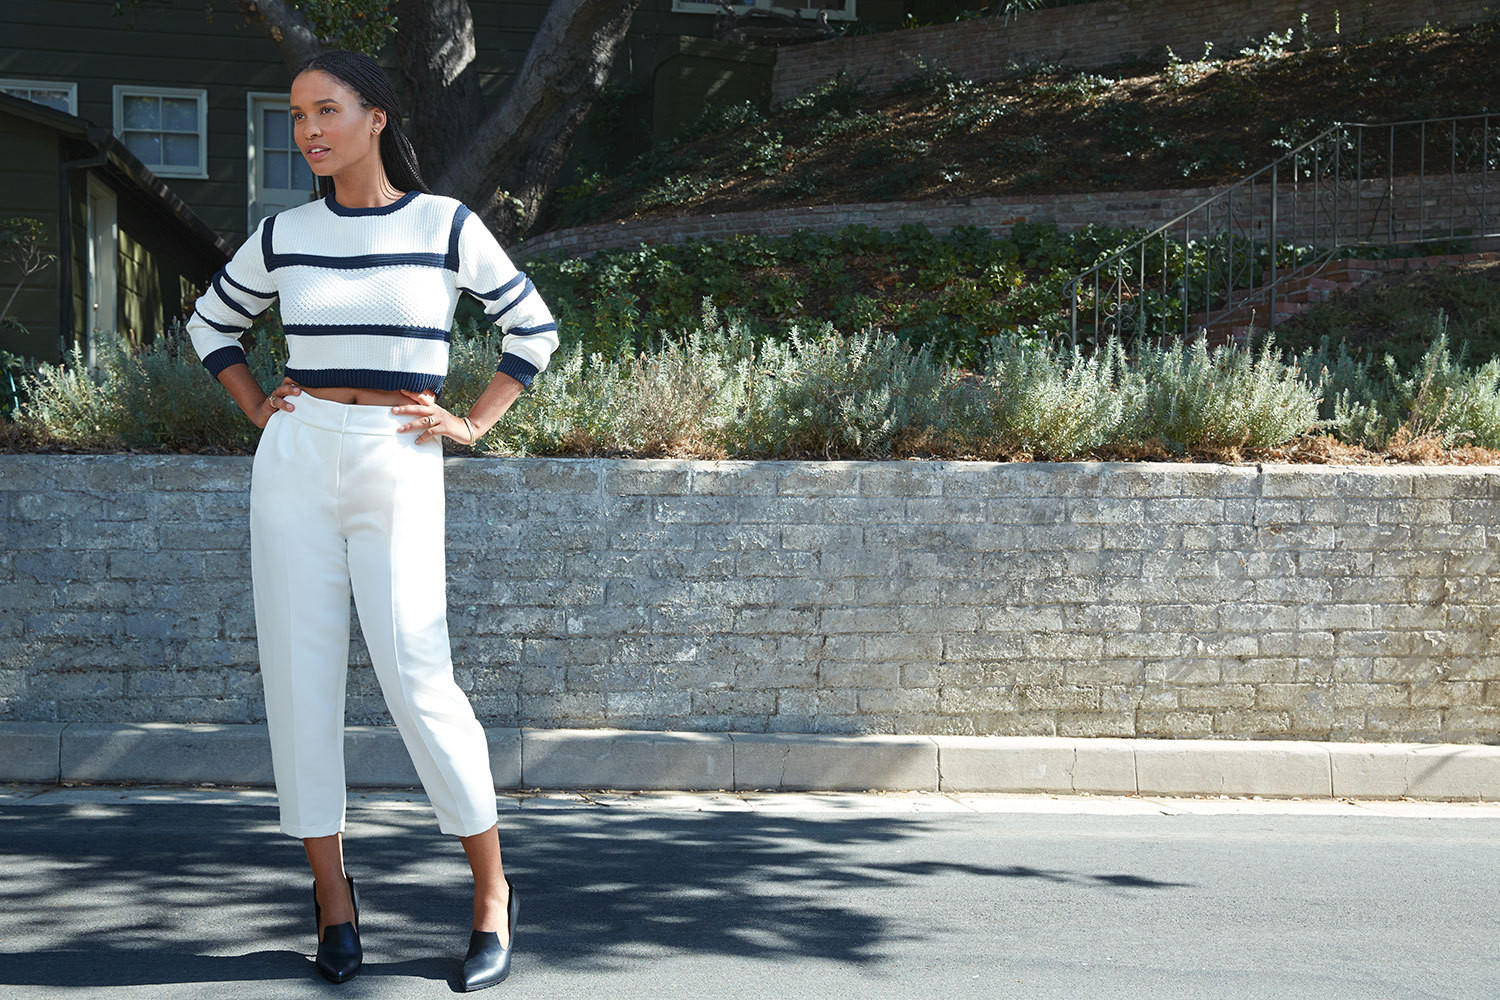 Actress Joy Bryant near her home in Glendale, California. Tibi sweater and Elisabetta Franchi pants; shoes by Greymer.Fashion styling by Jessie Cohan. Hair by Clariss Rubenstein at the Wall Group. Makeup by Gregory Arlt at Exclusive Artists Management. Prop styling by Joni Noe.